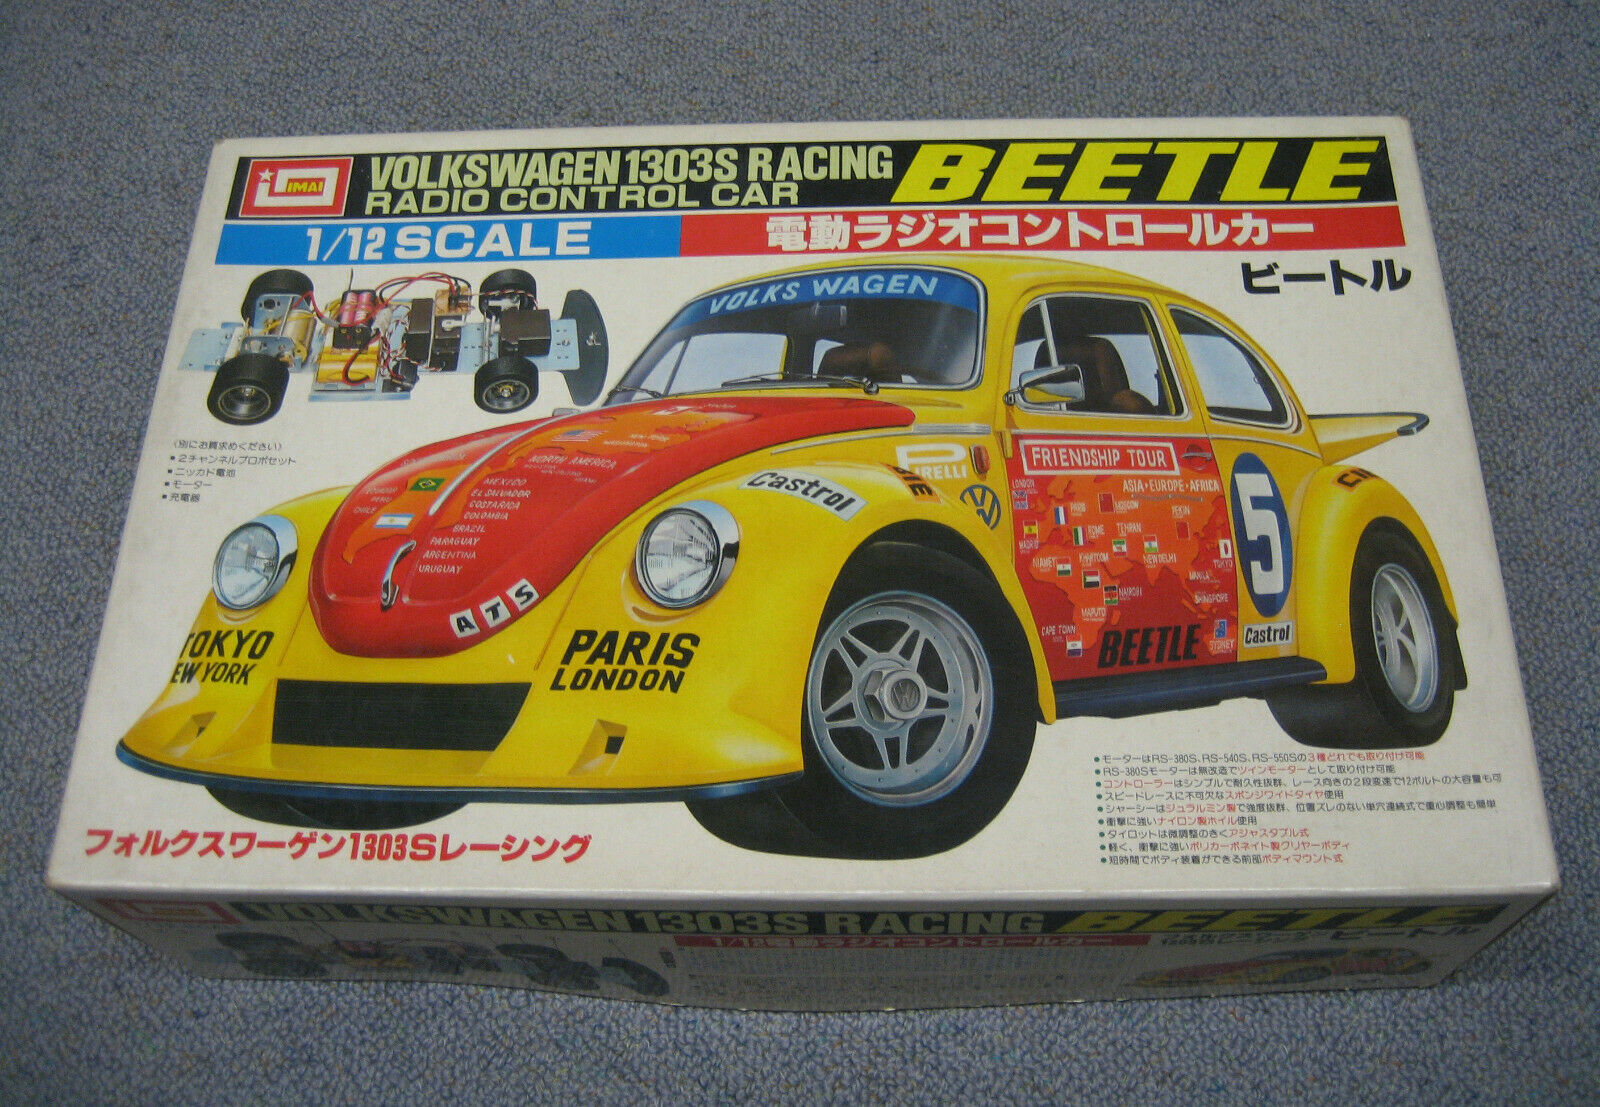 RC IMAI Kit VW Beetle Volkswagen 1303 RACING No.B829 Nuovo Nuovo Con Scatola 1976 (Tamiya)